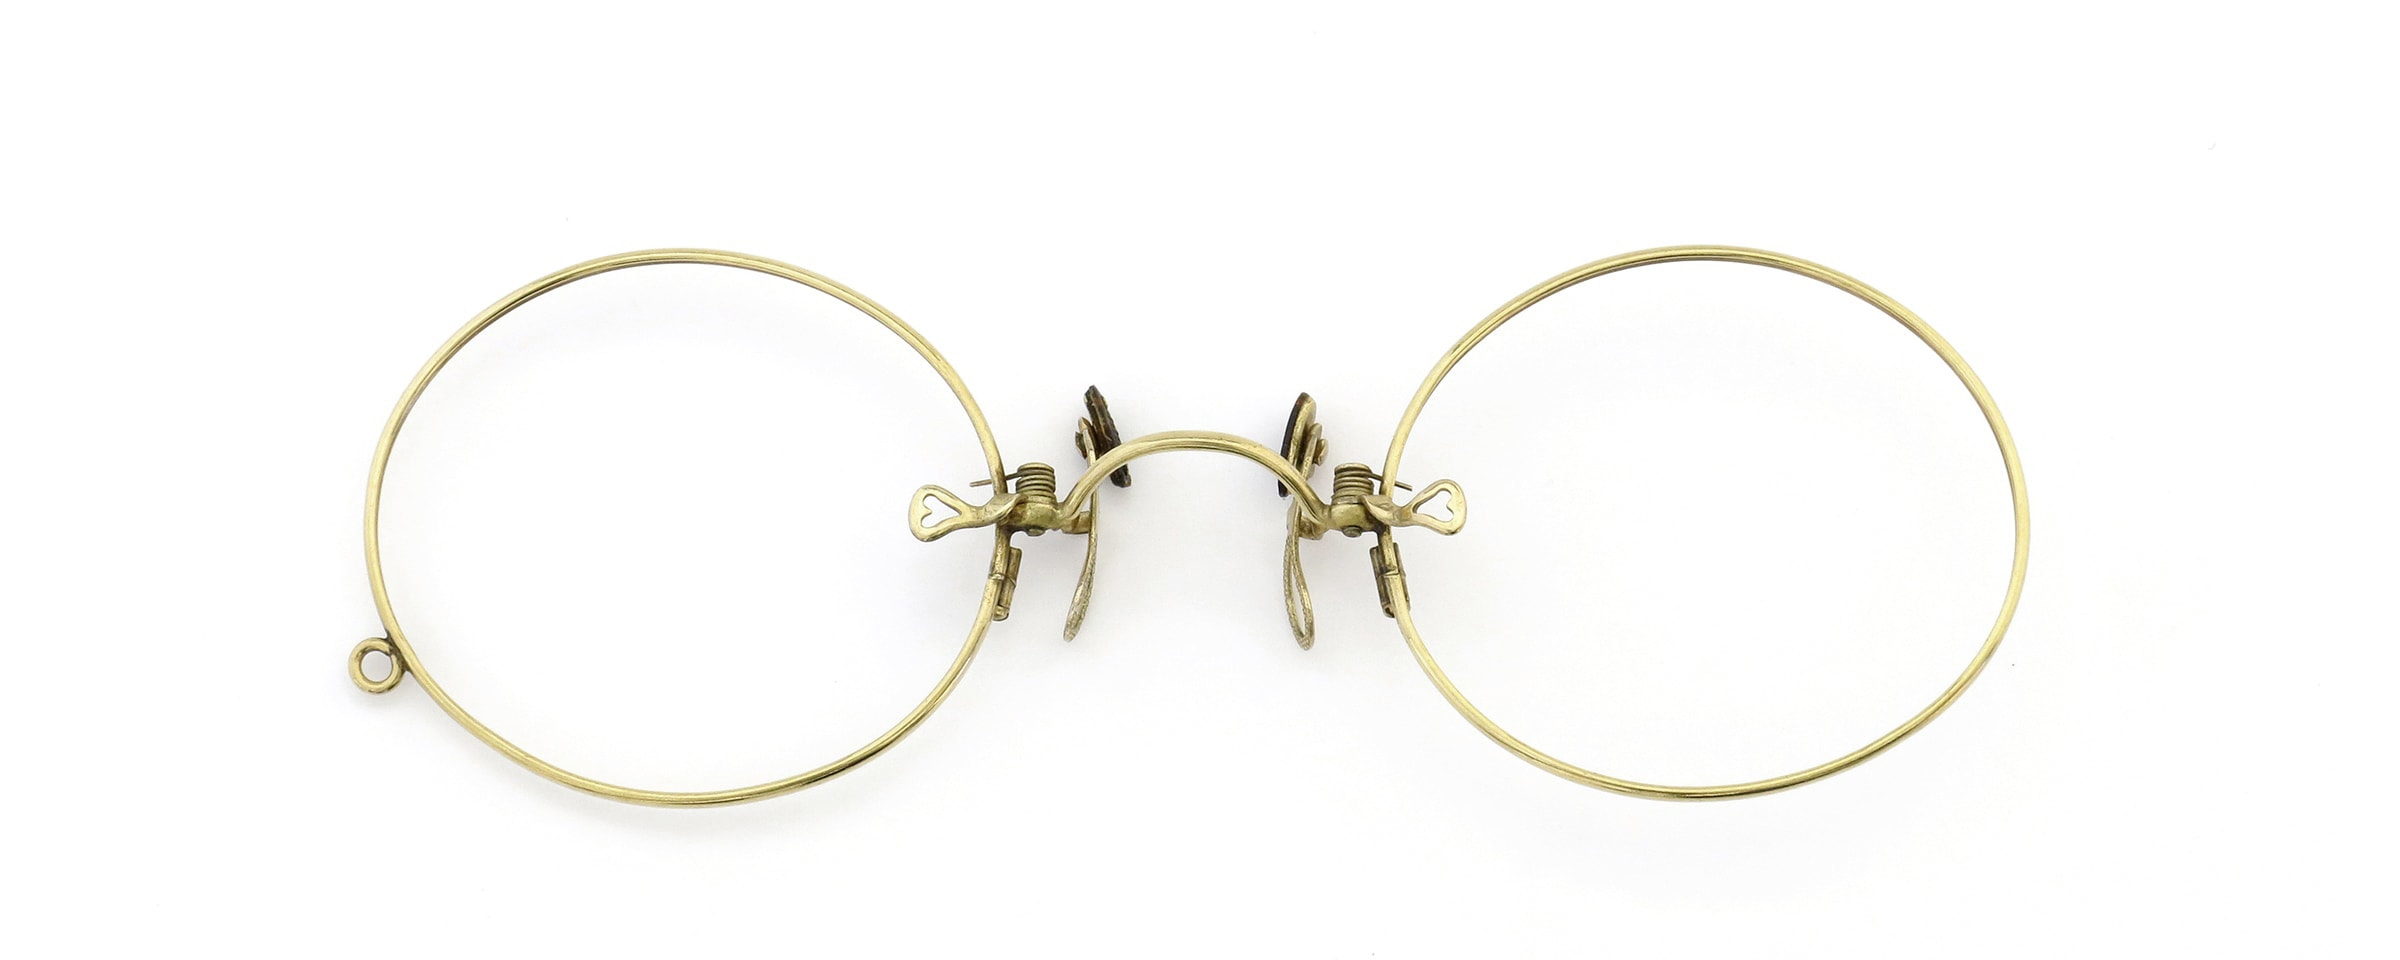 Lesca Speciality collection Pince Nez [v3] Oval